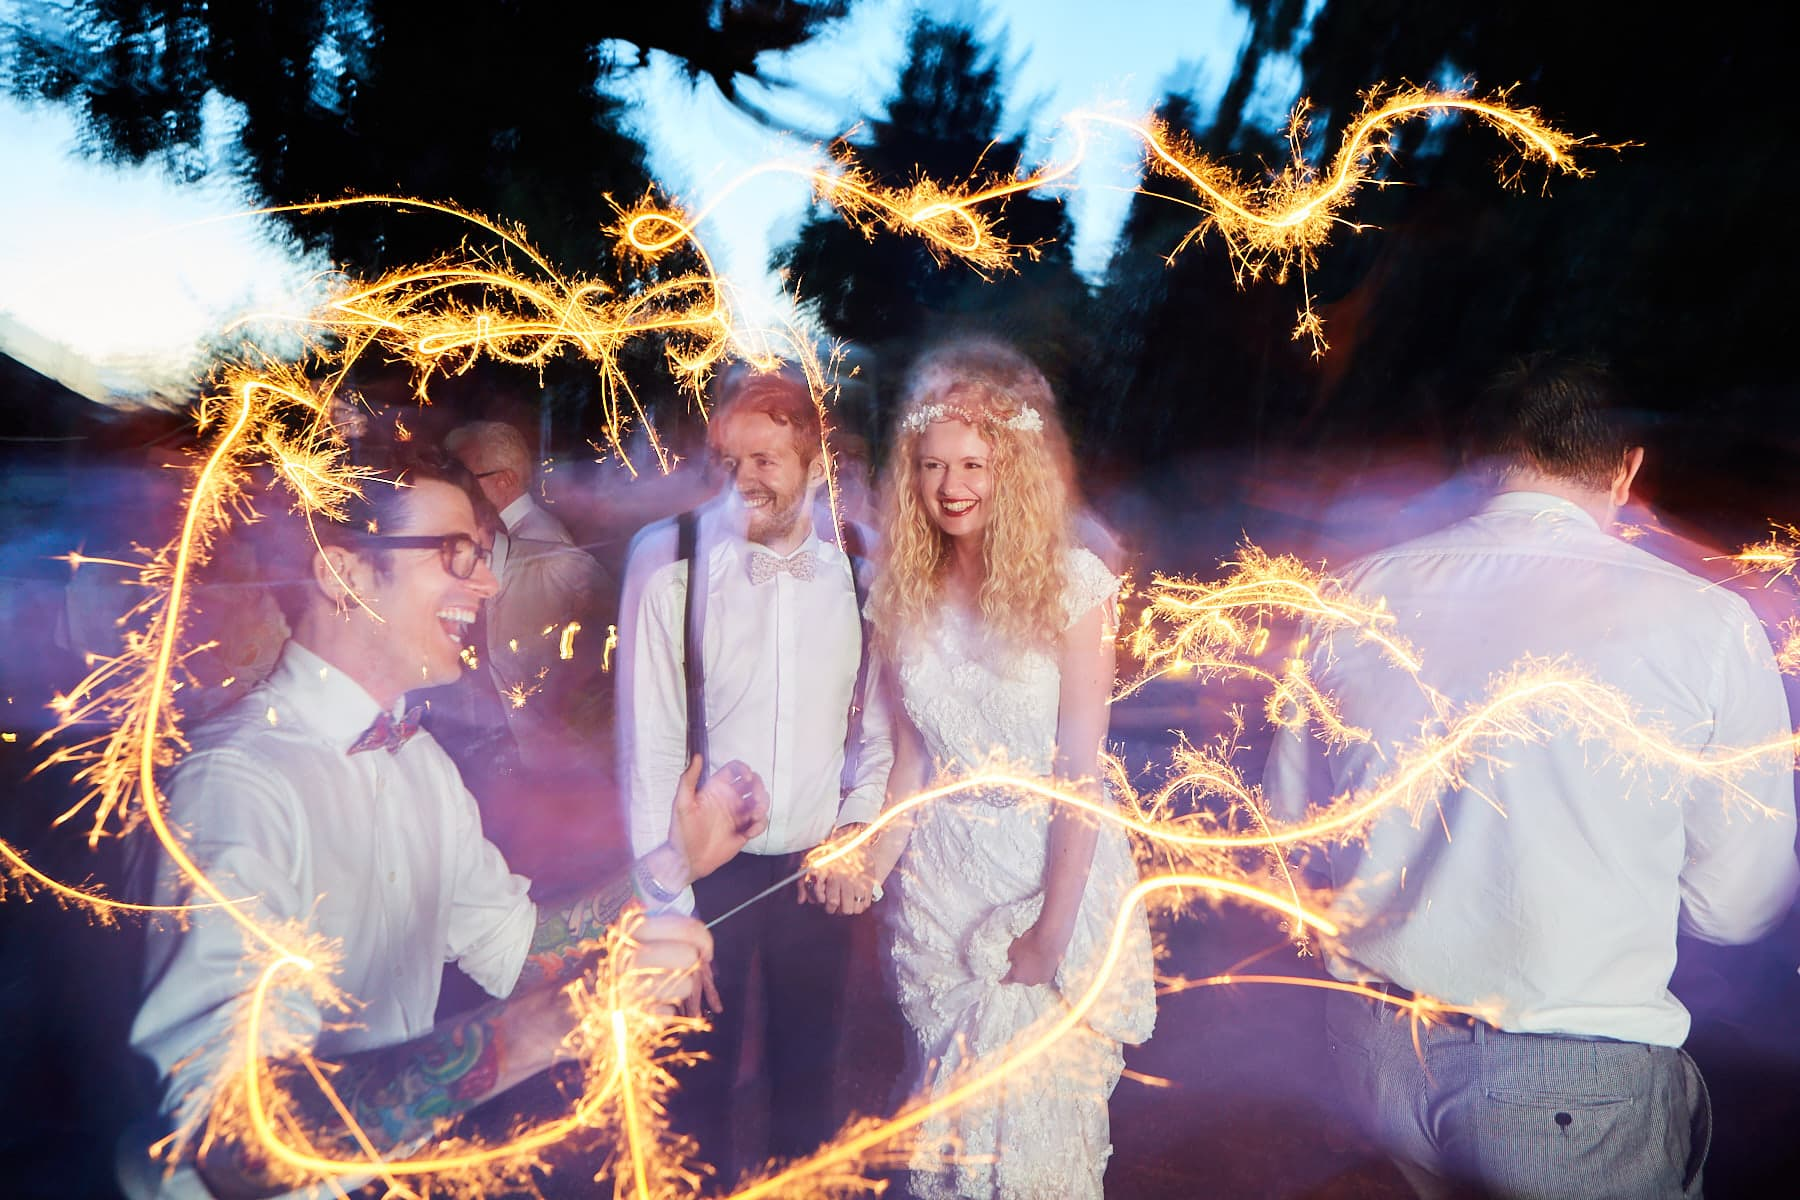 A couple pose whilst their friends dance around them with sparklers on their wedding day.